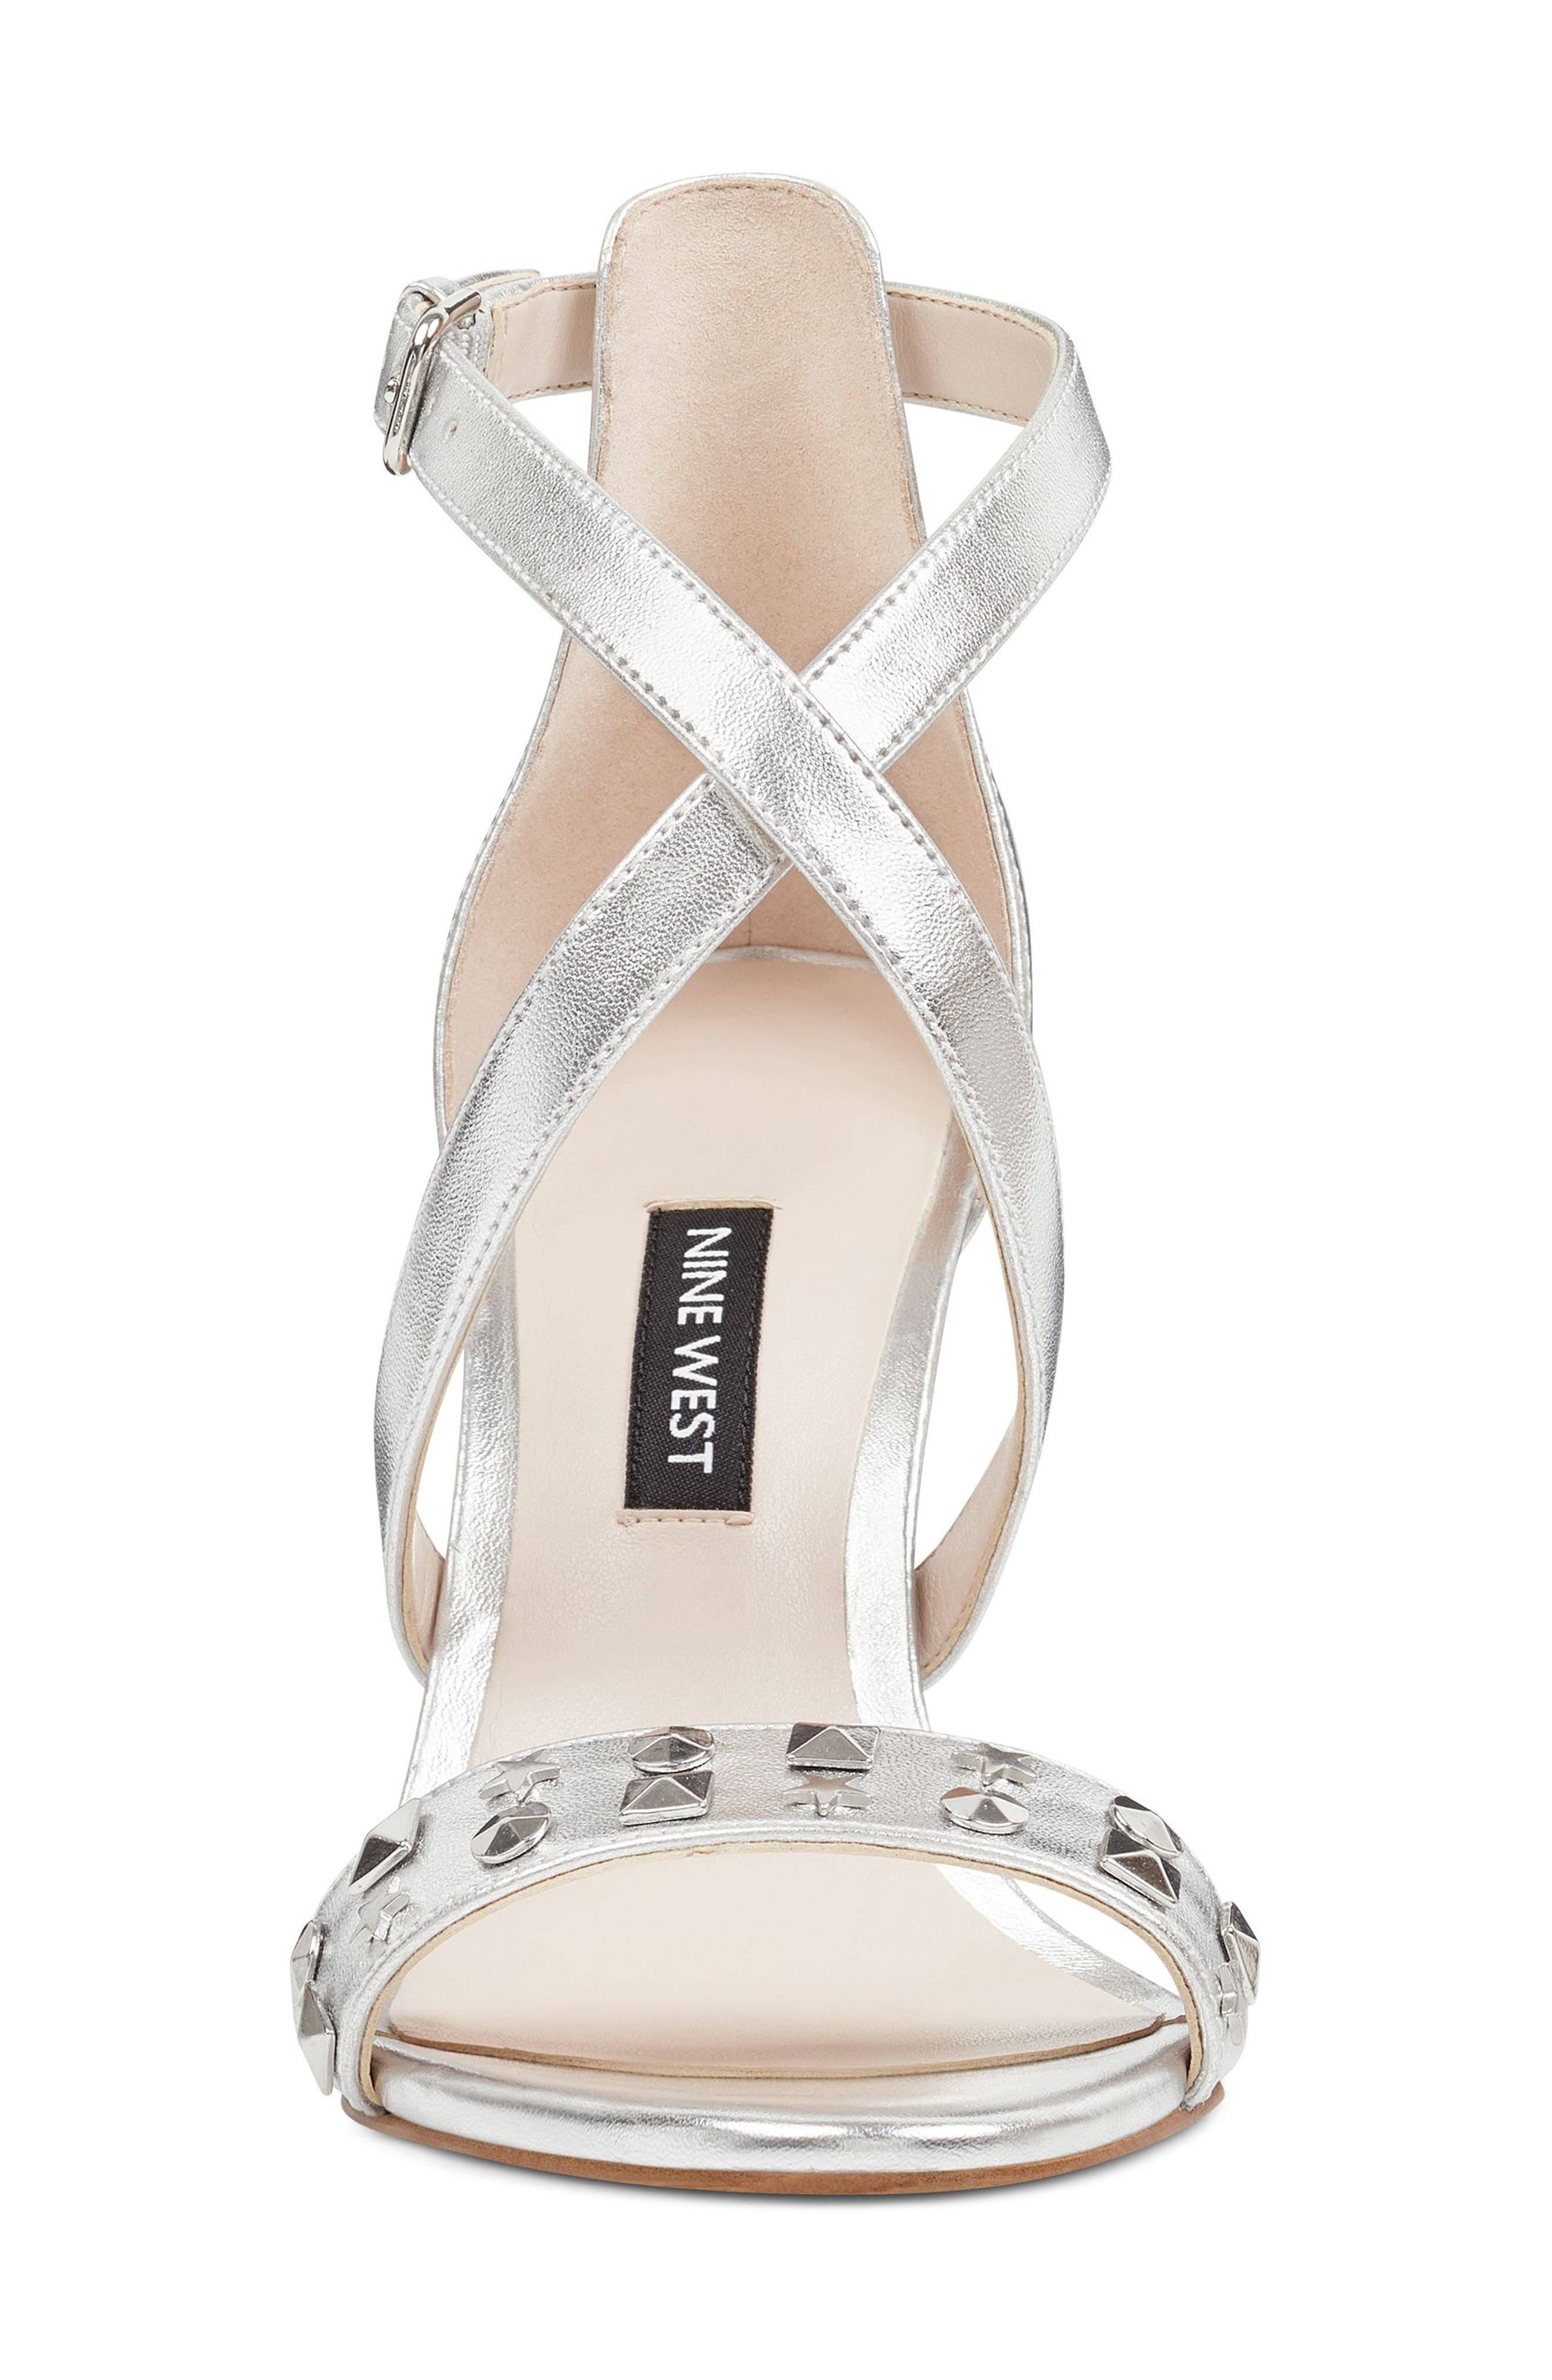 Maziany Studded Sandal,                             Alternate thumbnail 4, color,                             Silver Faux Leather